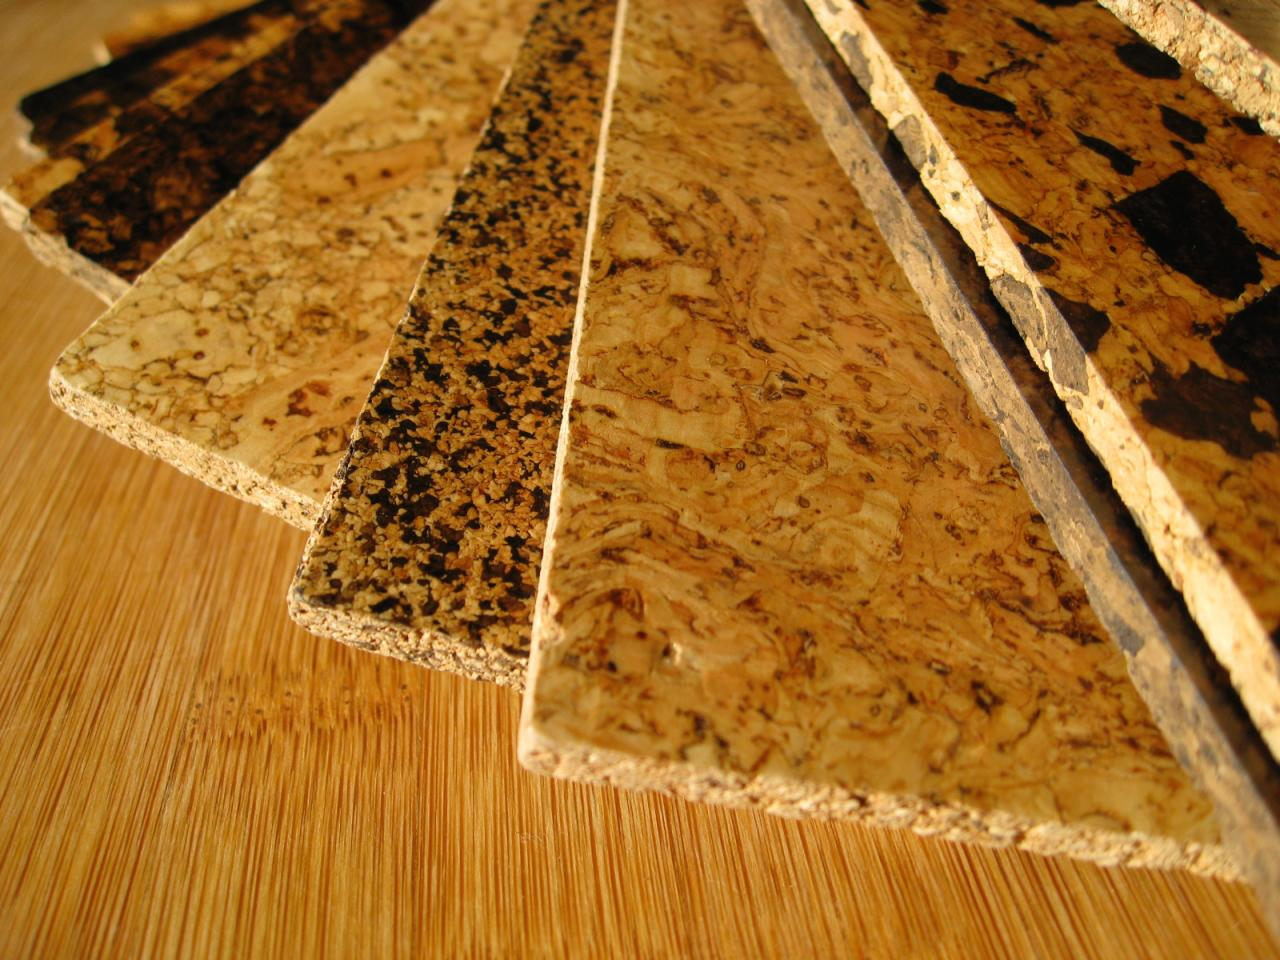 Cork Flooring For Kitchens Pros And Cons Cork Flooring For Kitchens And Bathrooms All About Flooring Designs